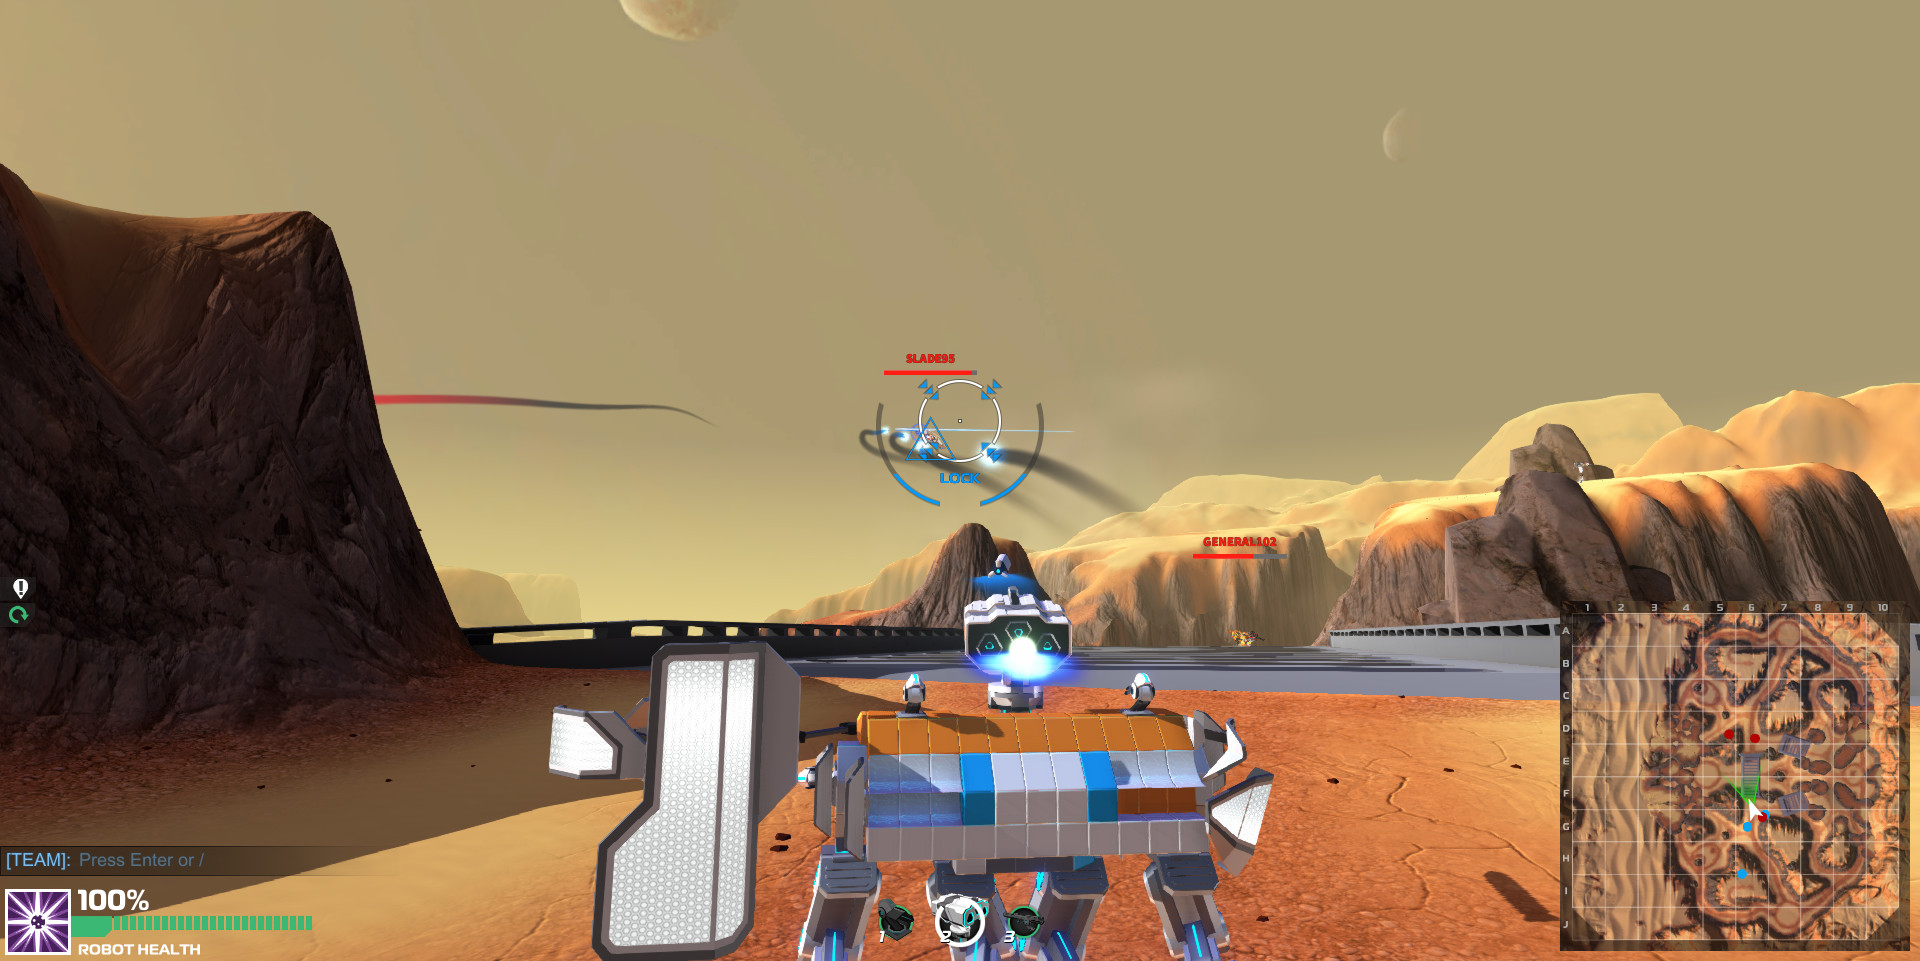 The first stage of removing loot crates from Robocraft is